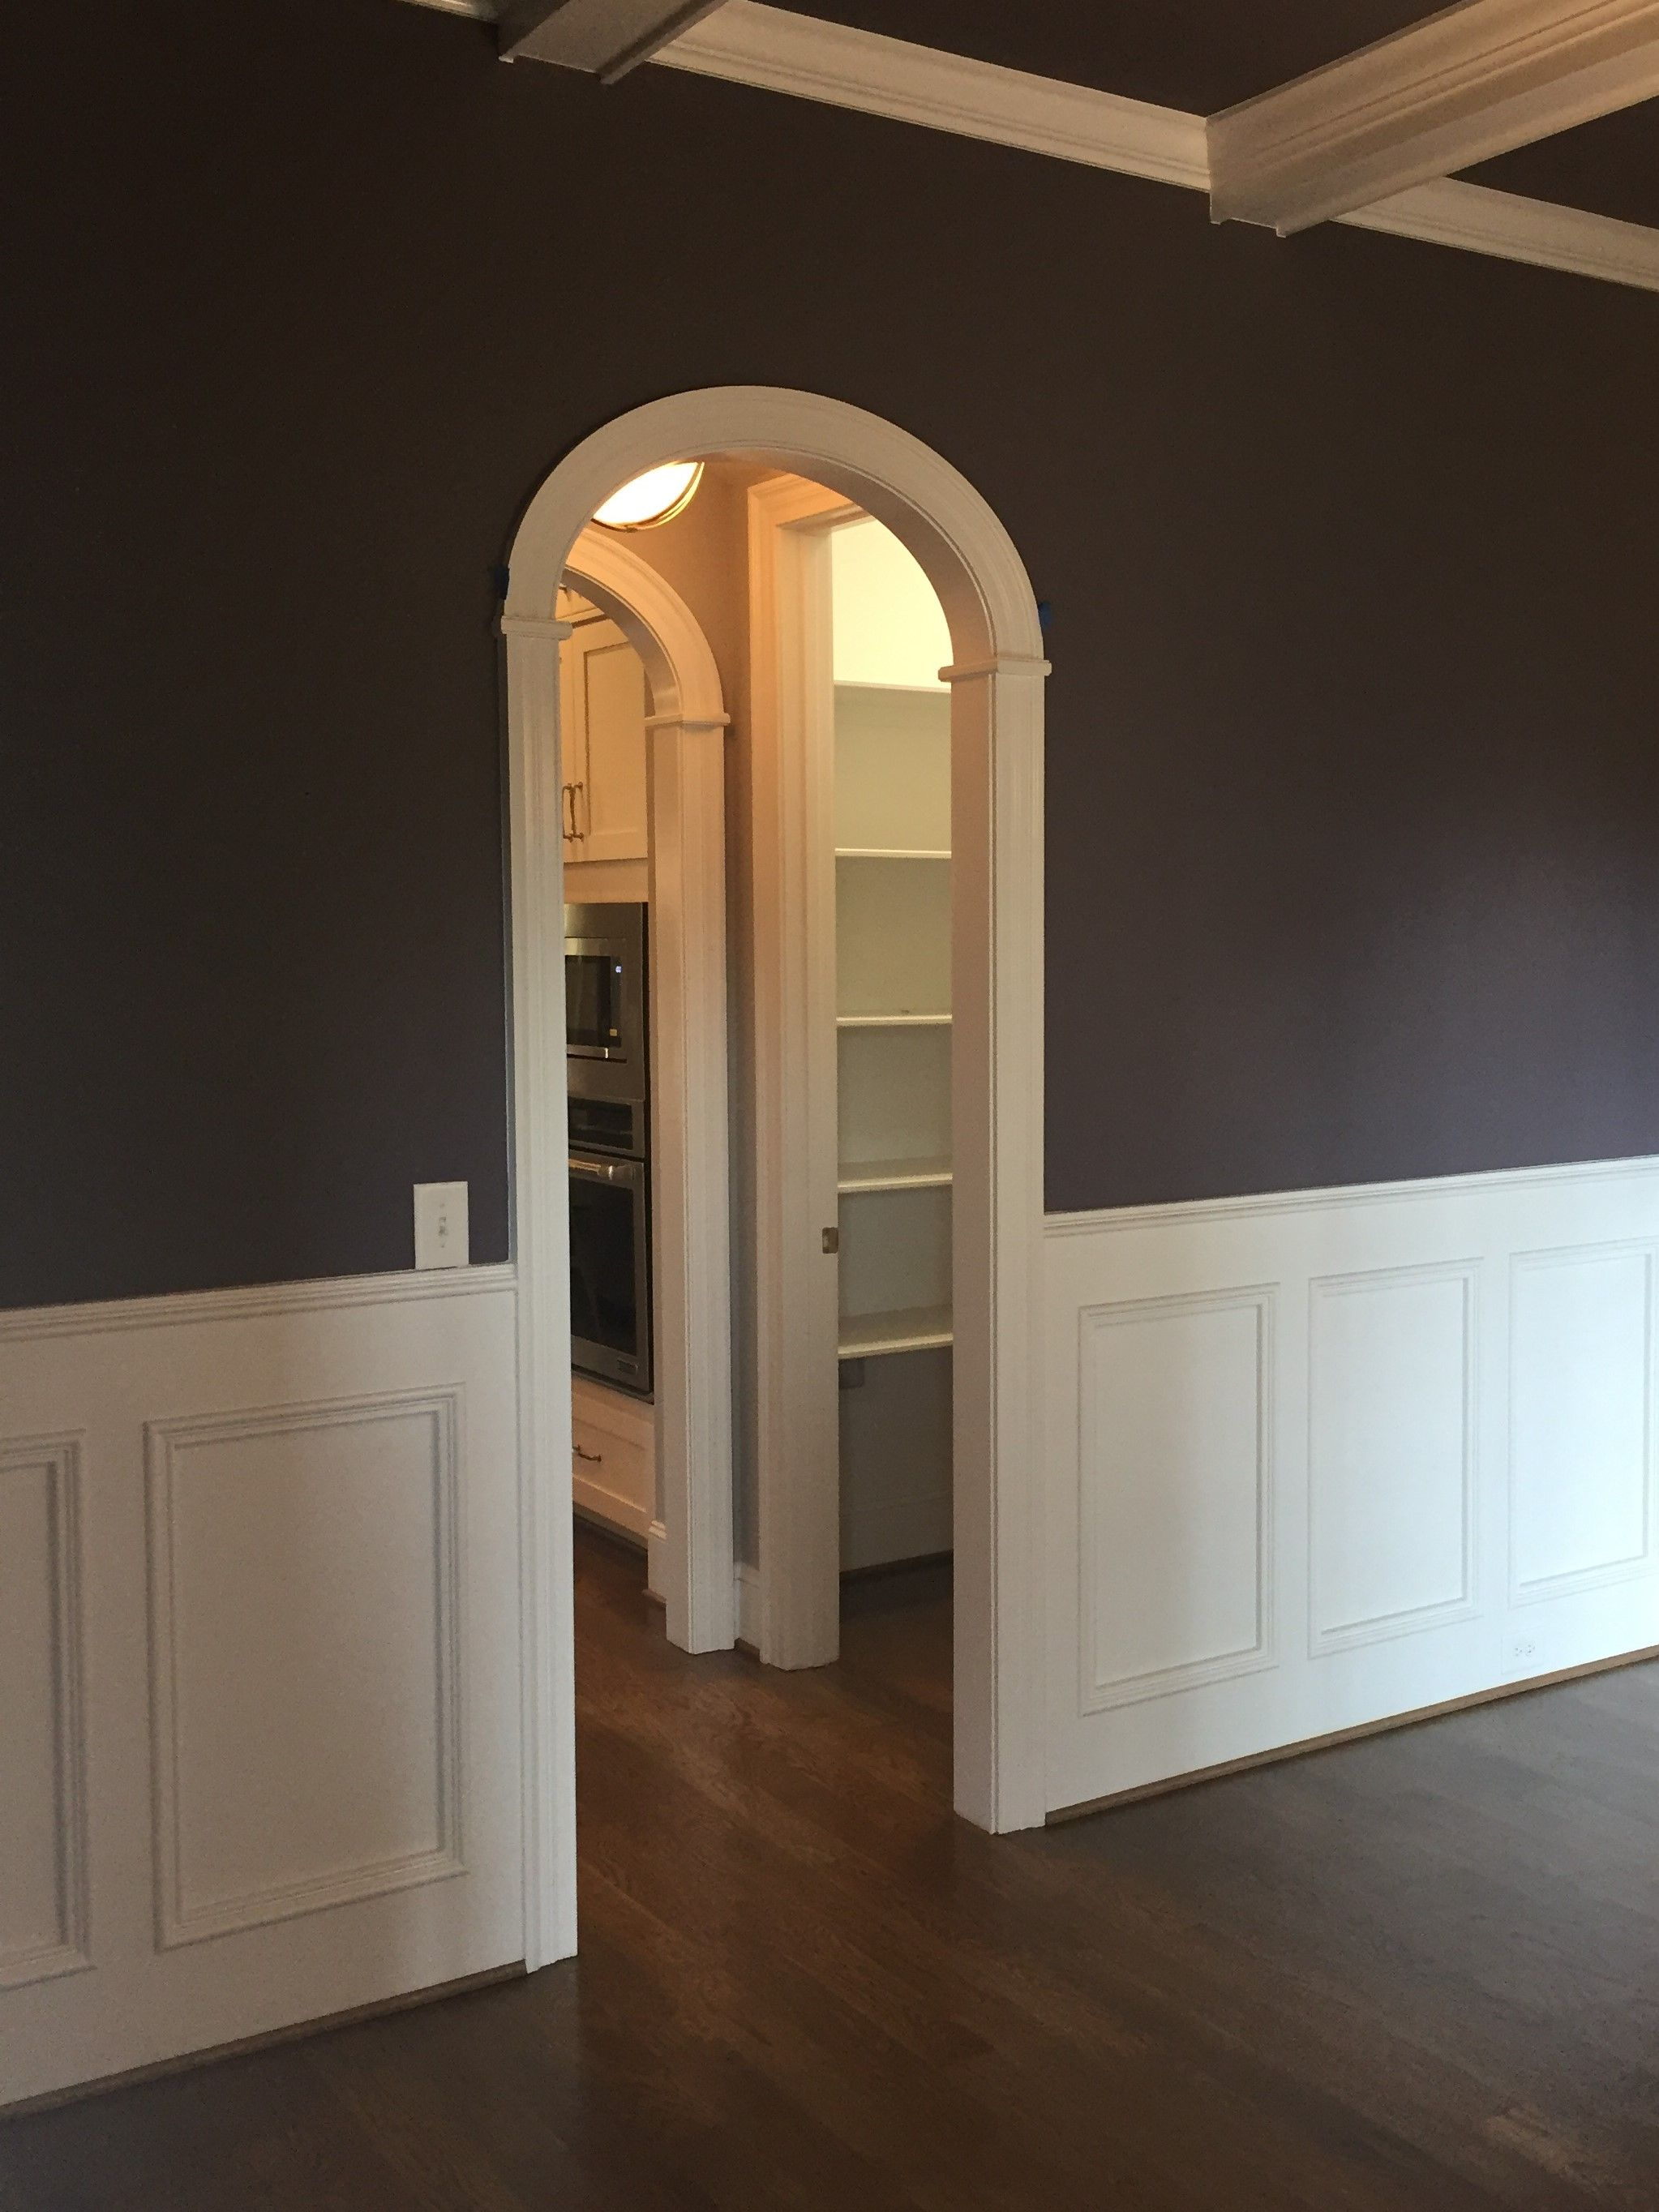 Round Arch In Butler Pantry Area Interior Archways Arched